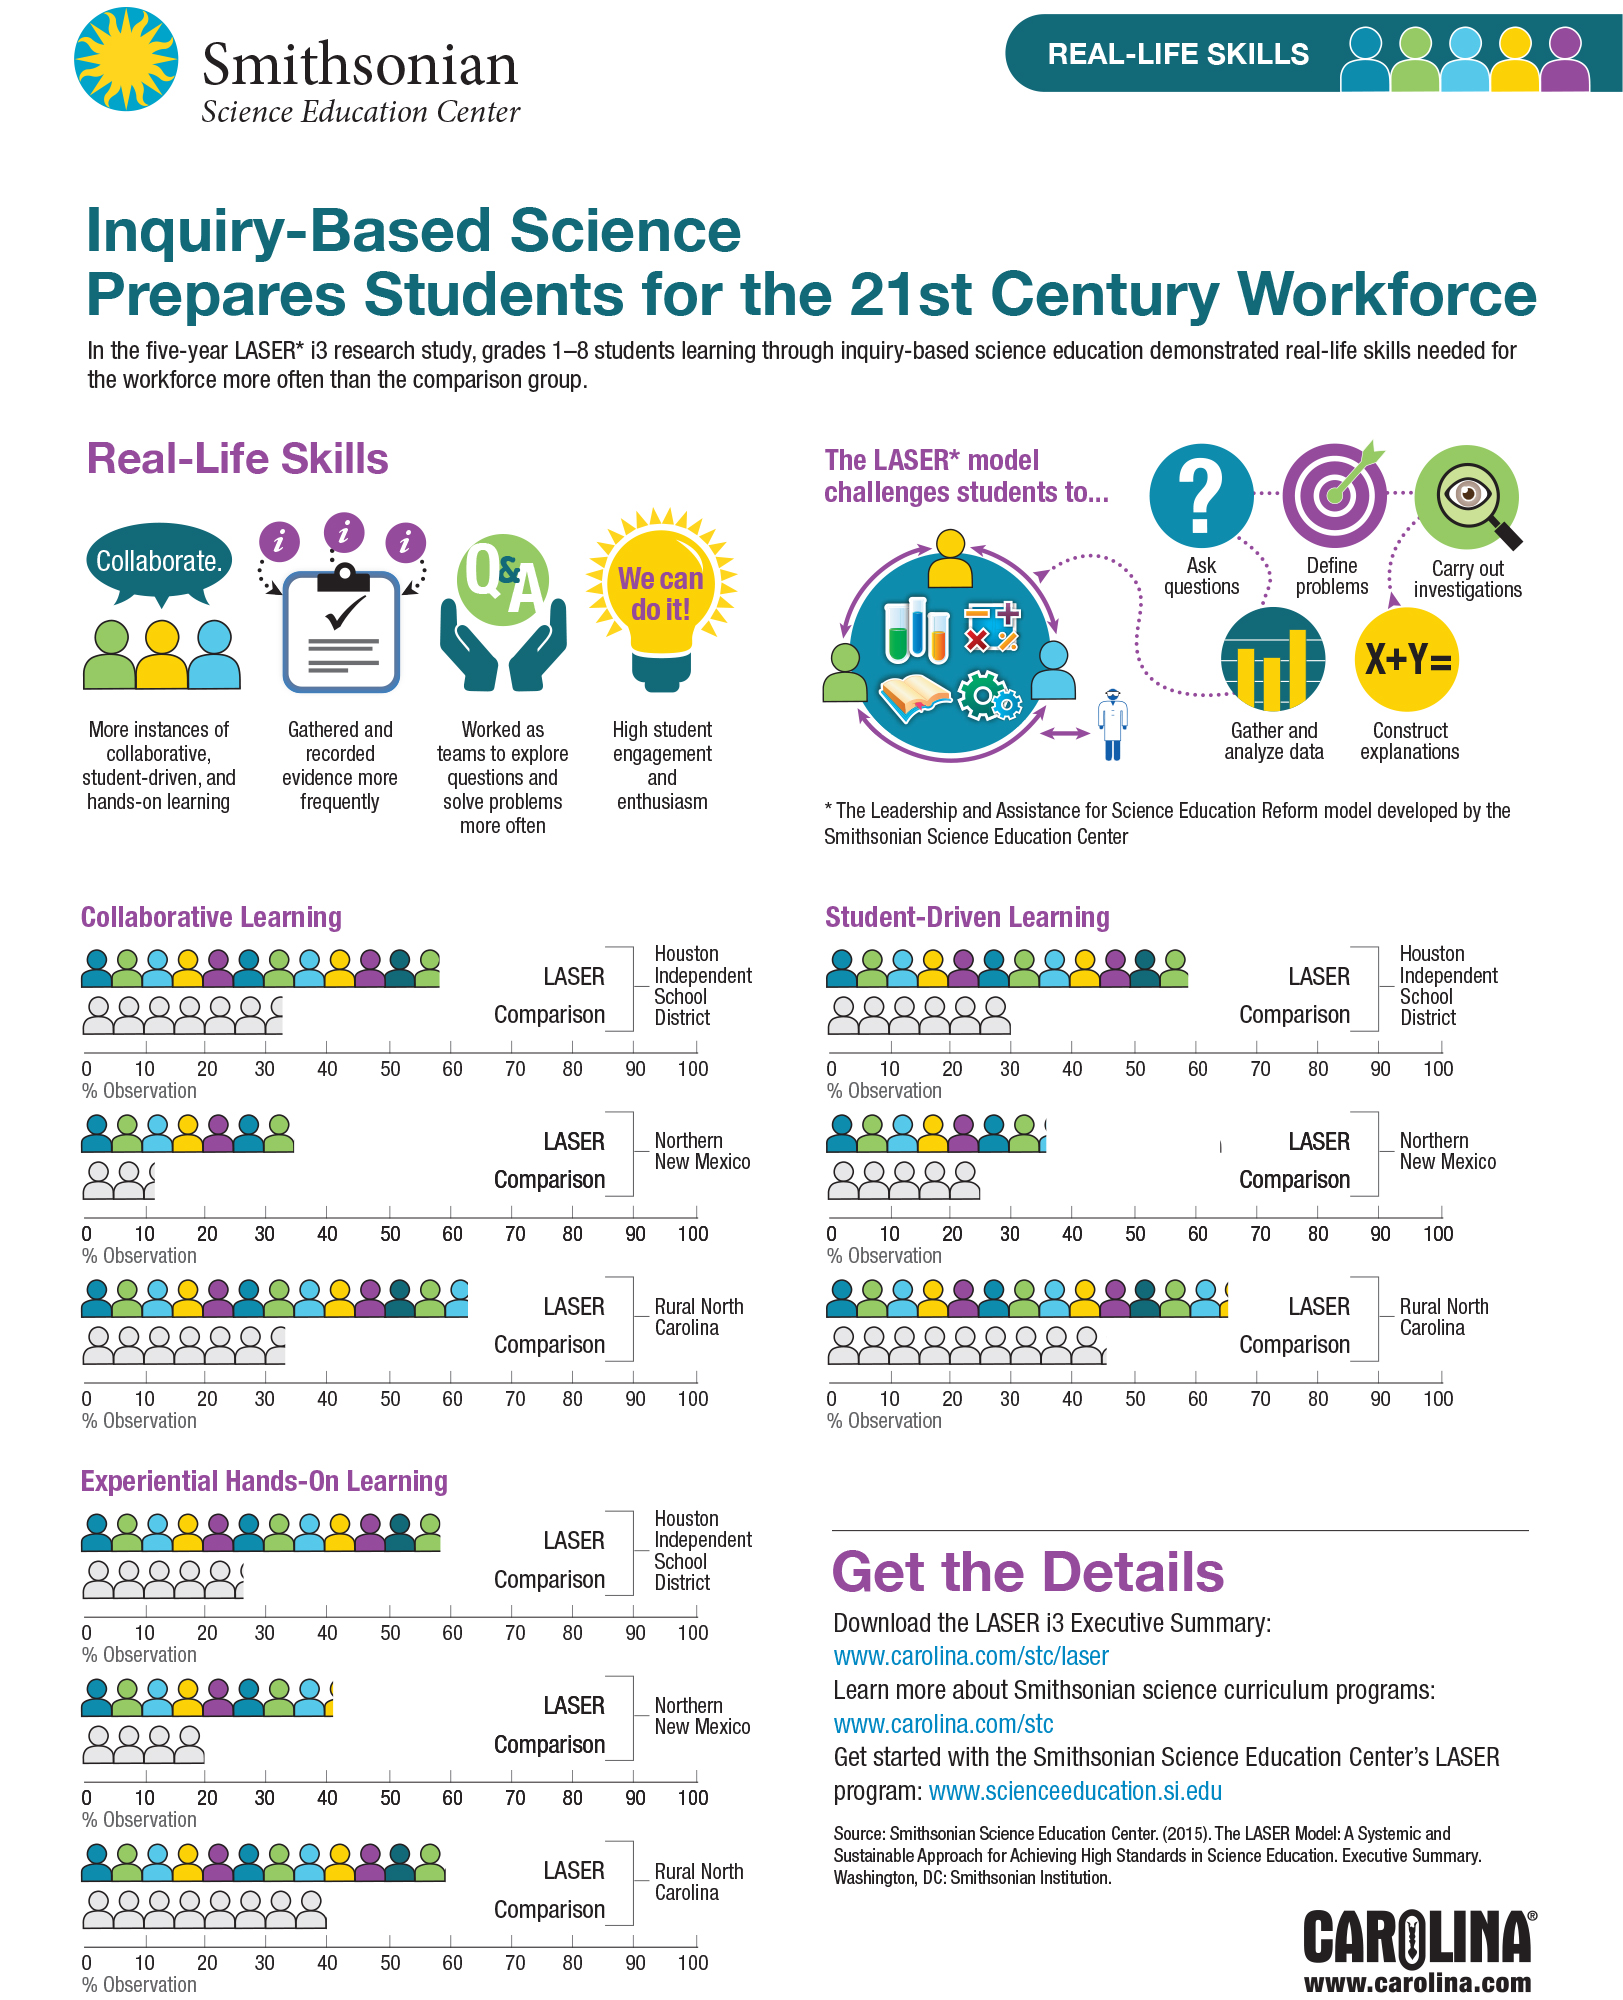 Inquiry-Based Science Prepares Students for the 21st Century Workforce